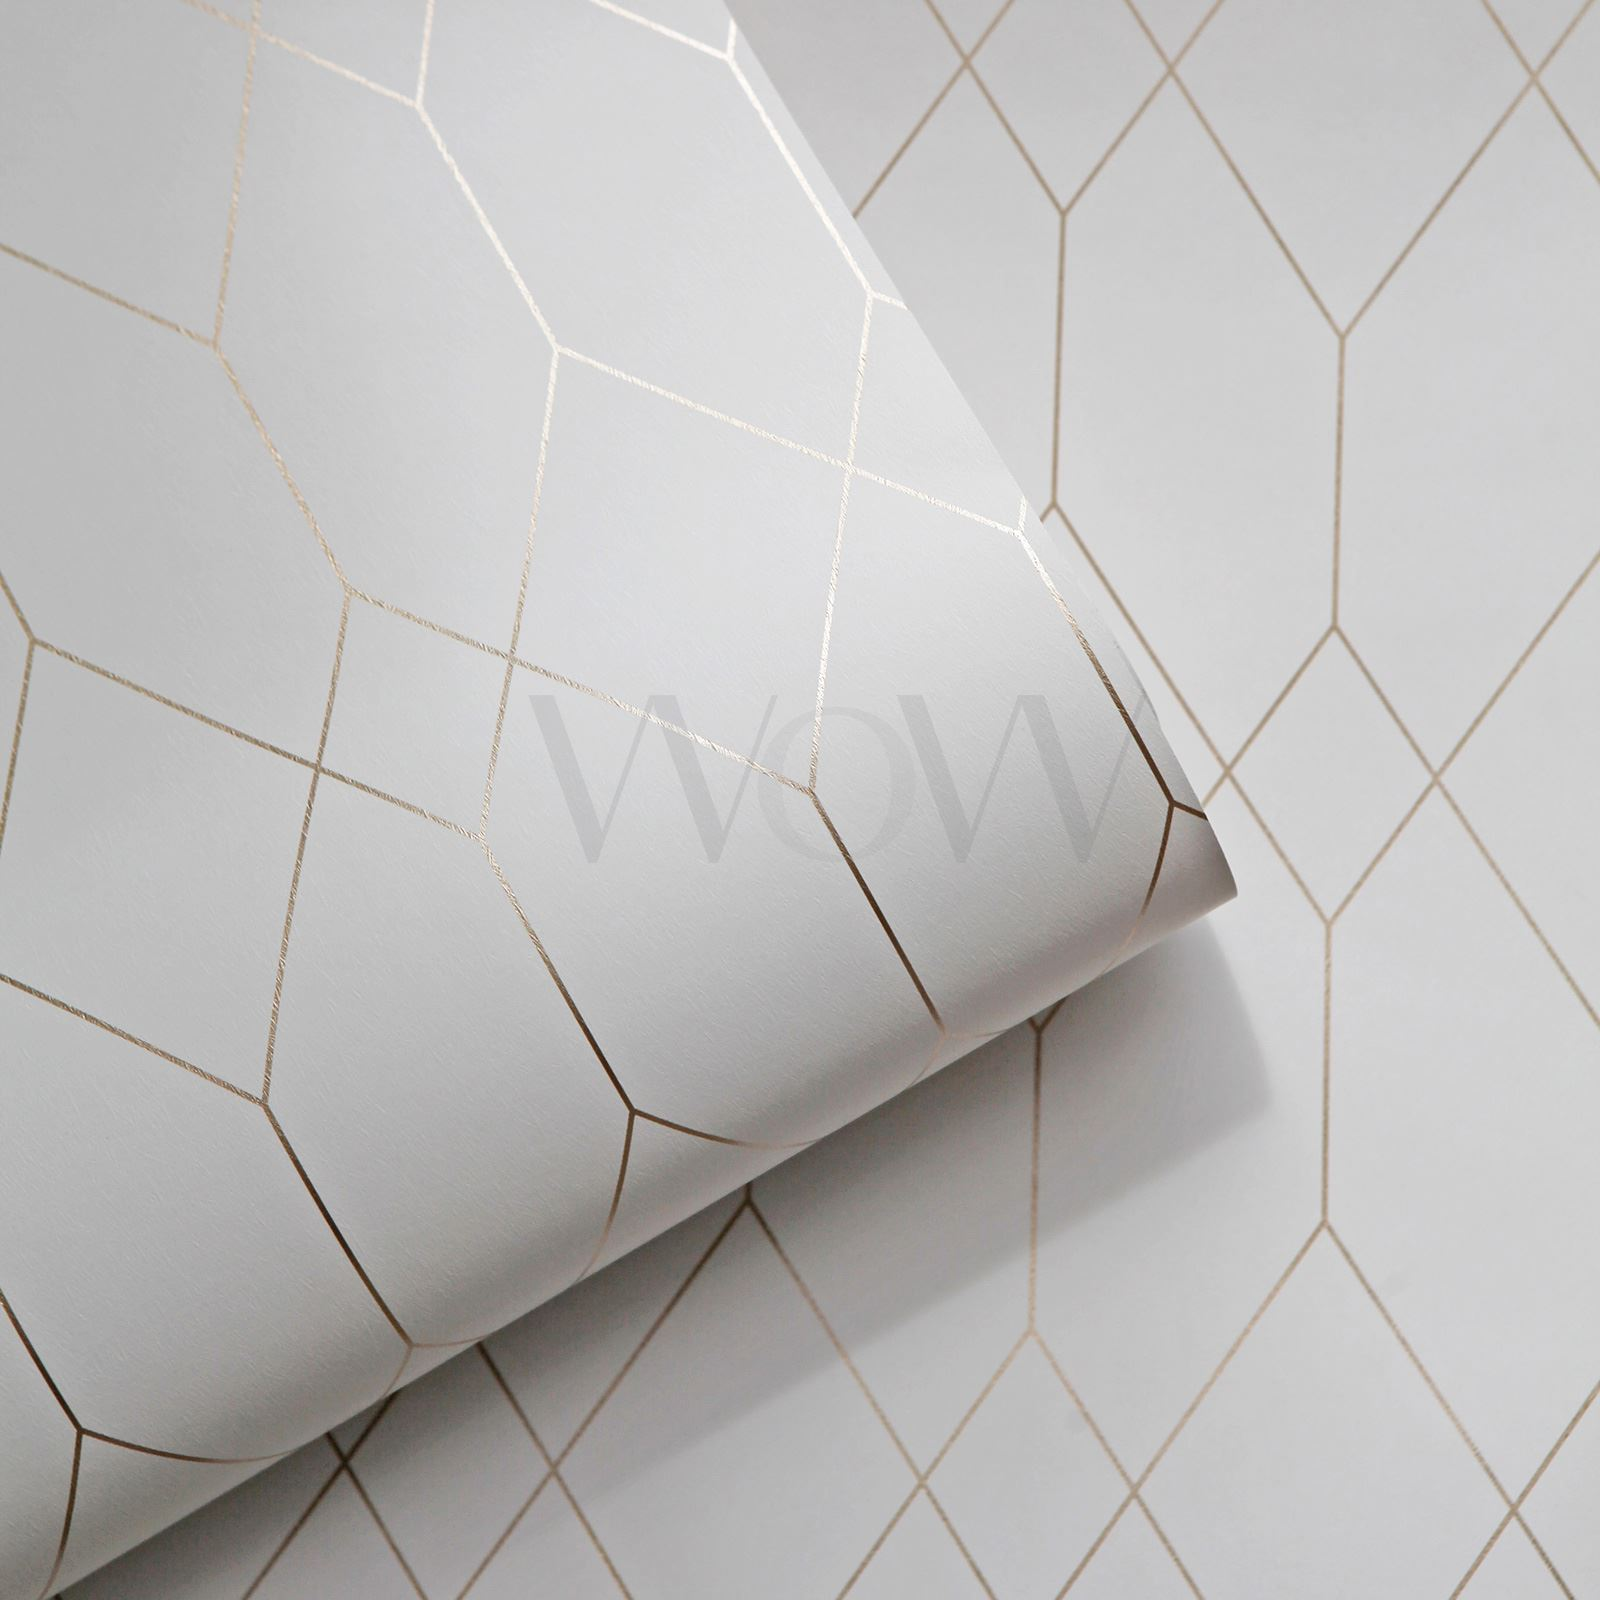 Apex Trellis Sidewall Wallpaper Copper: GEOMETRIC WALLPAPER GLITTER METALLIC